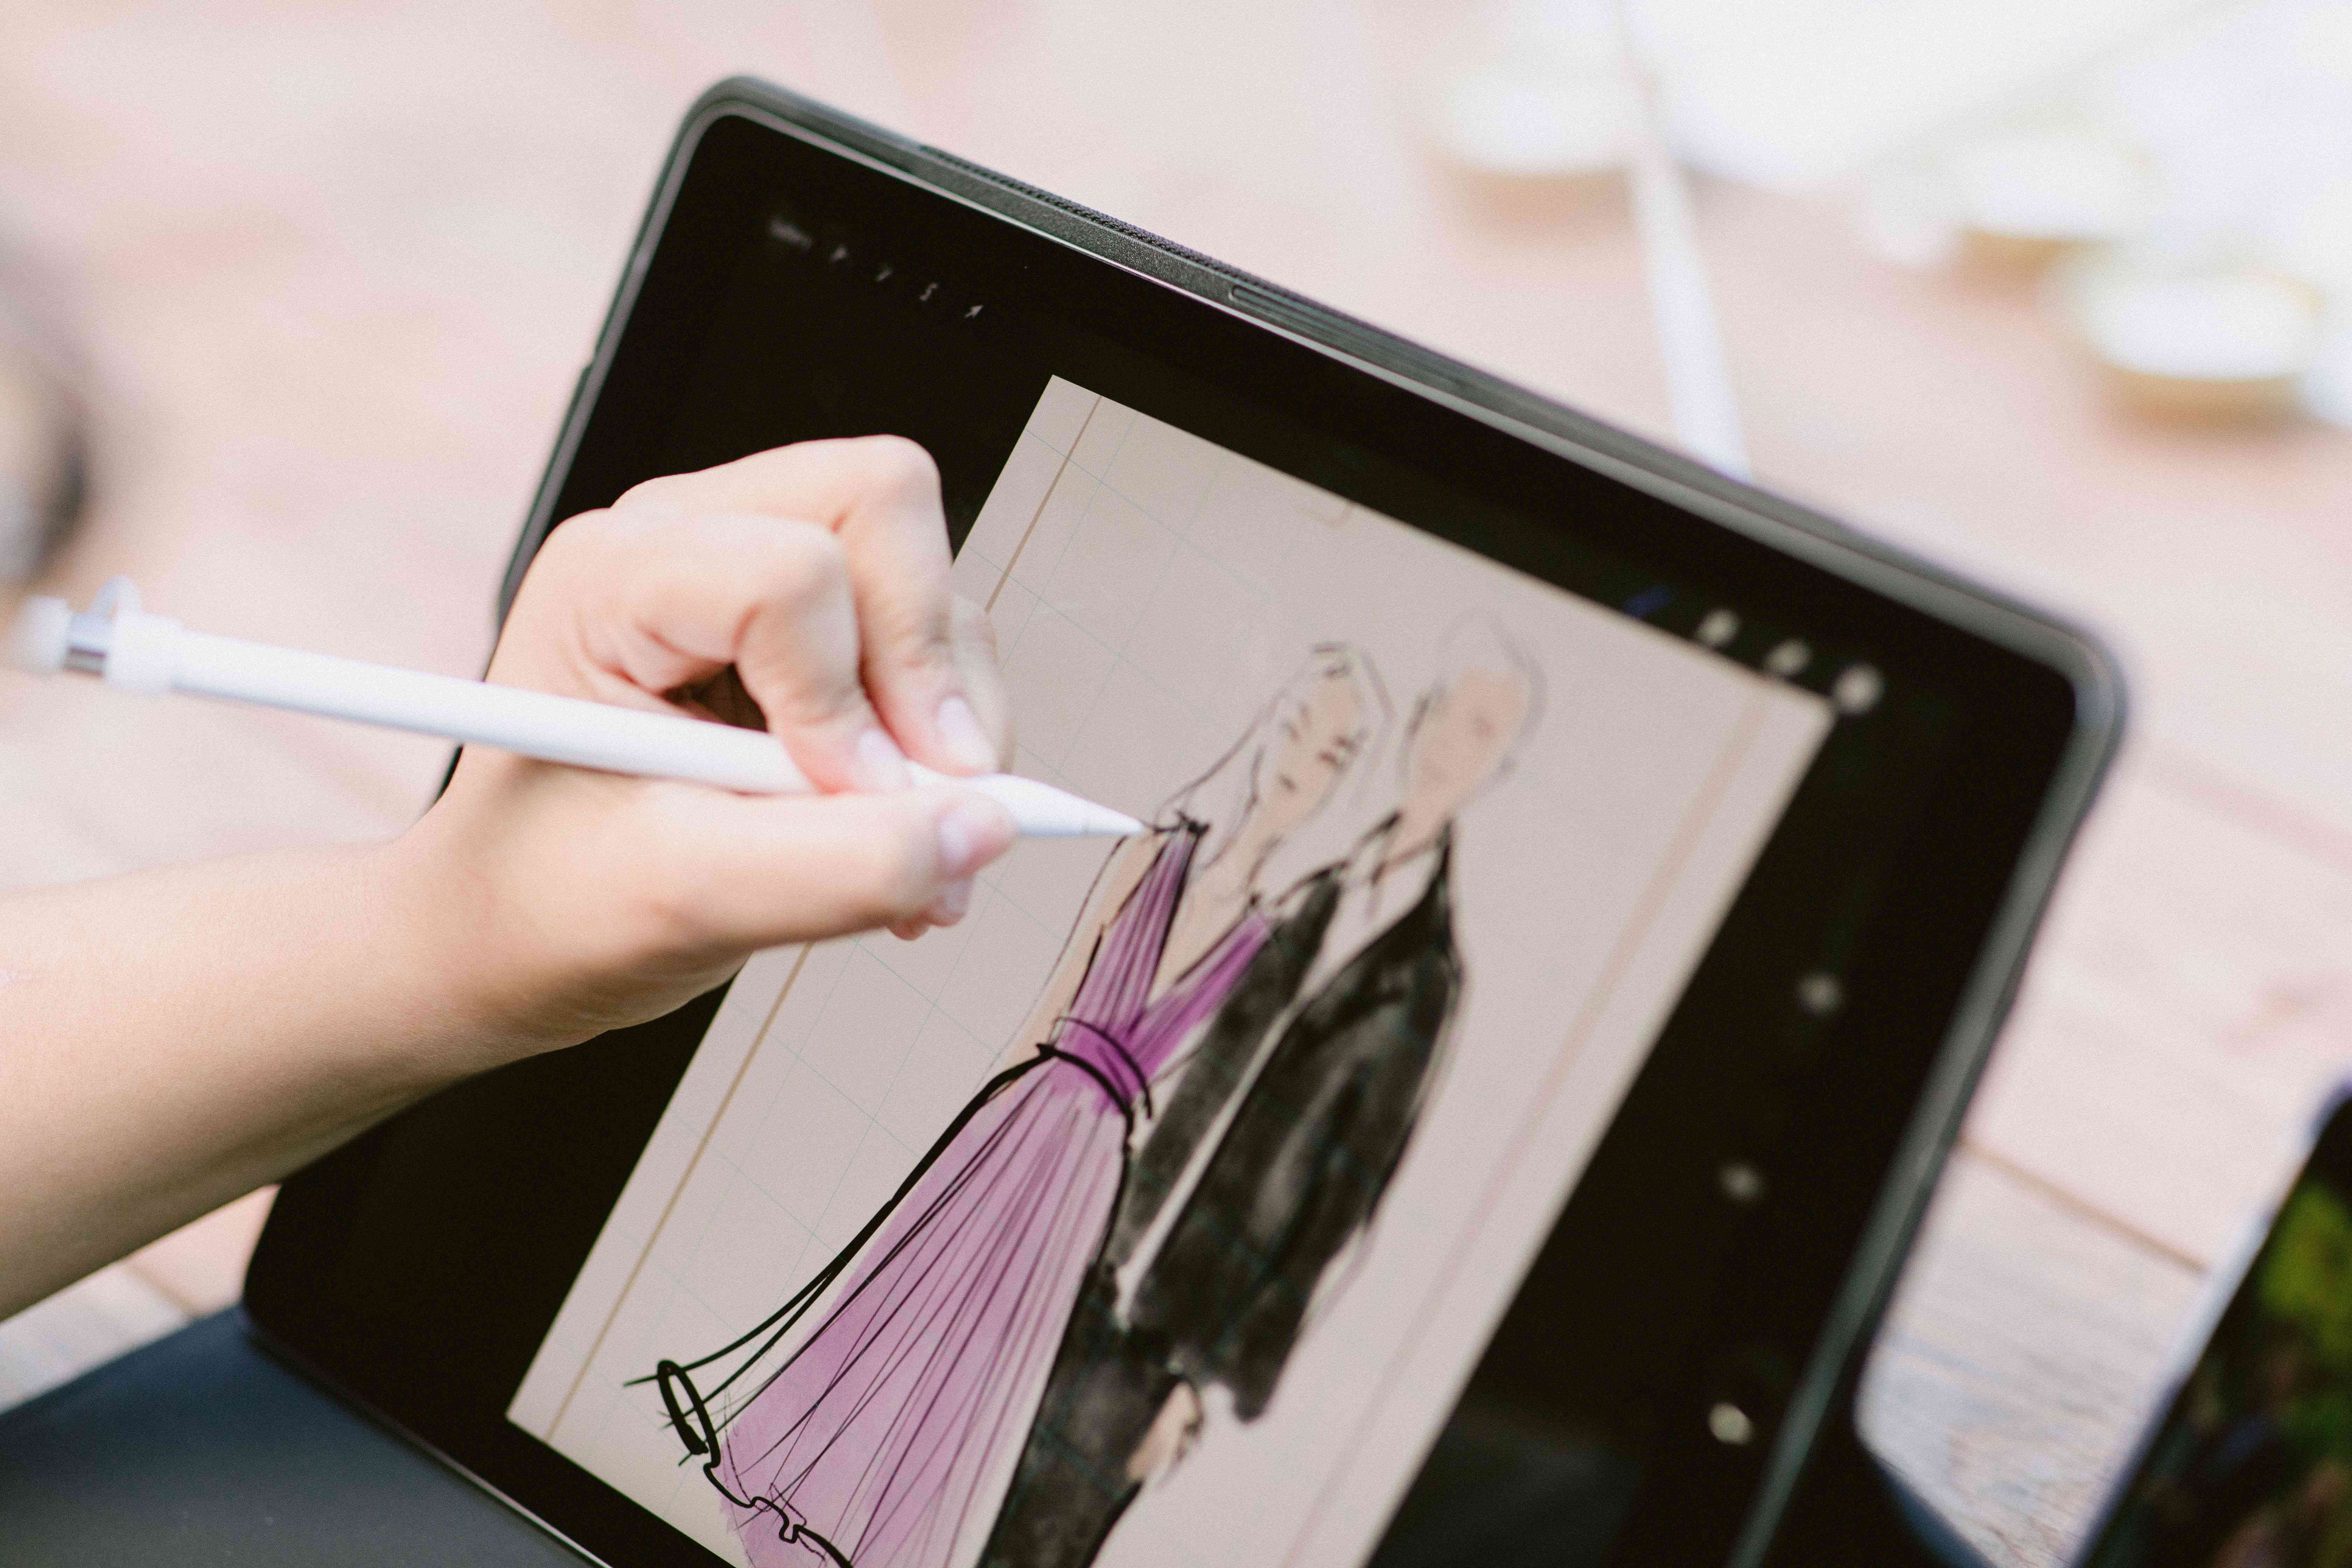 Drawing an illustration on a tablet